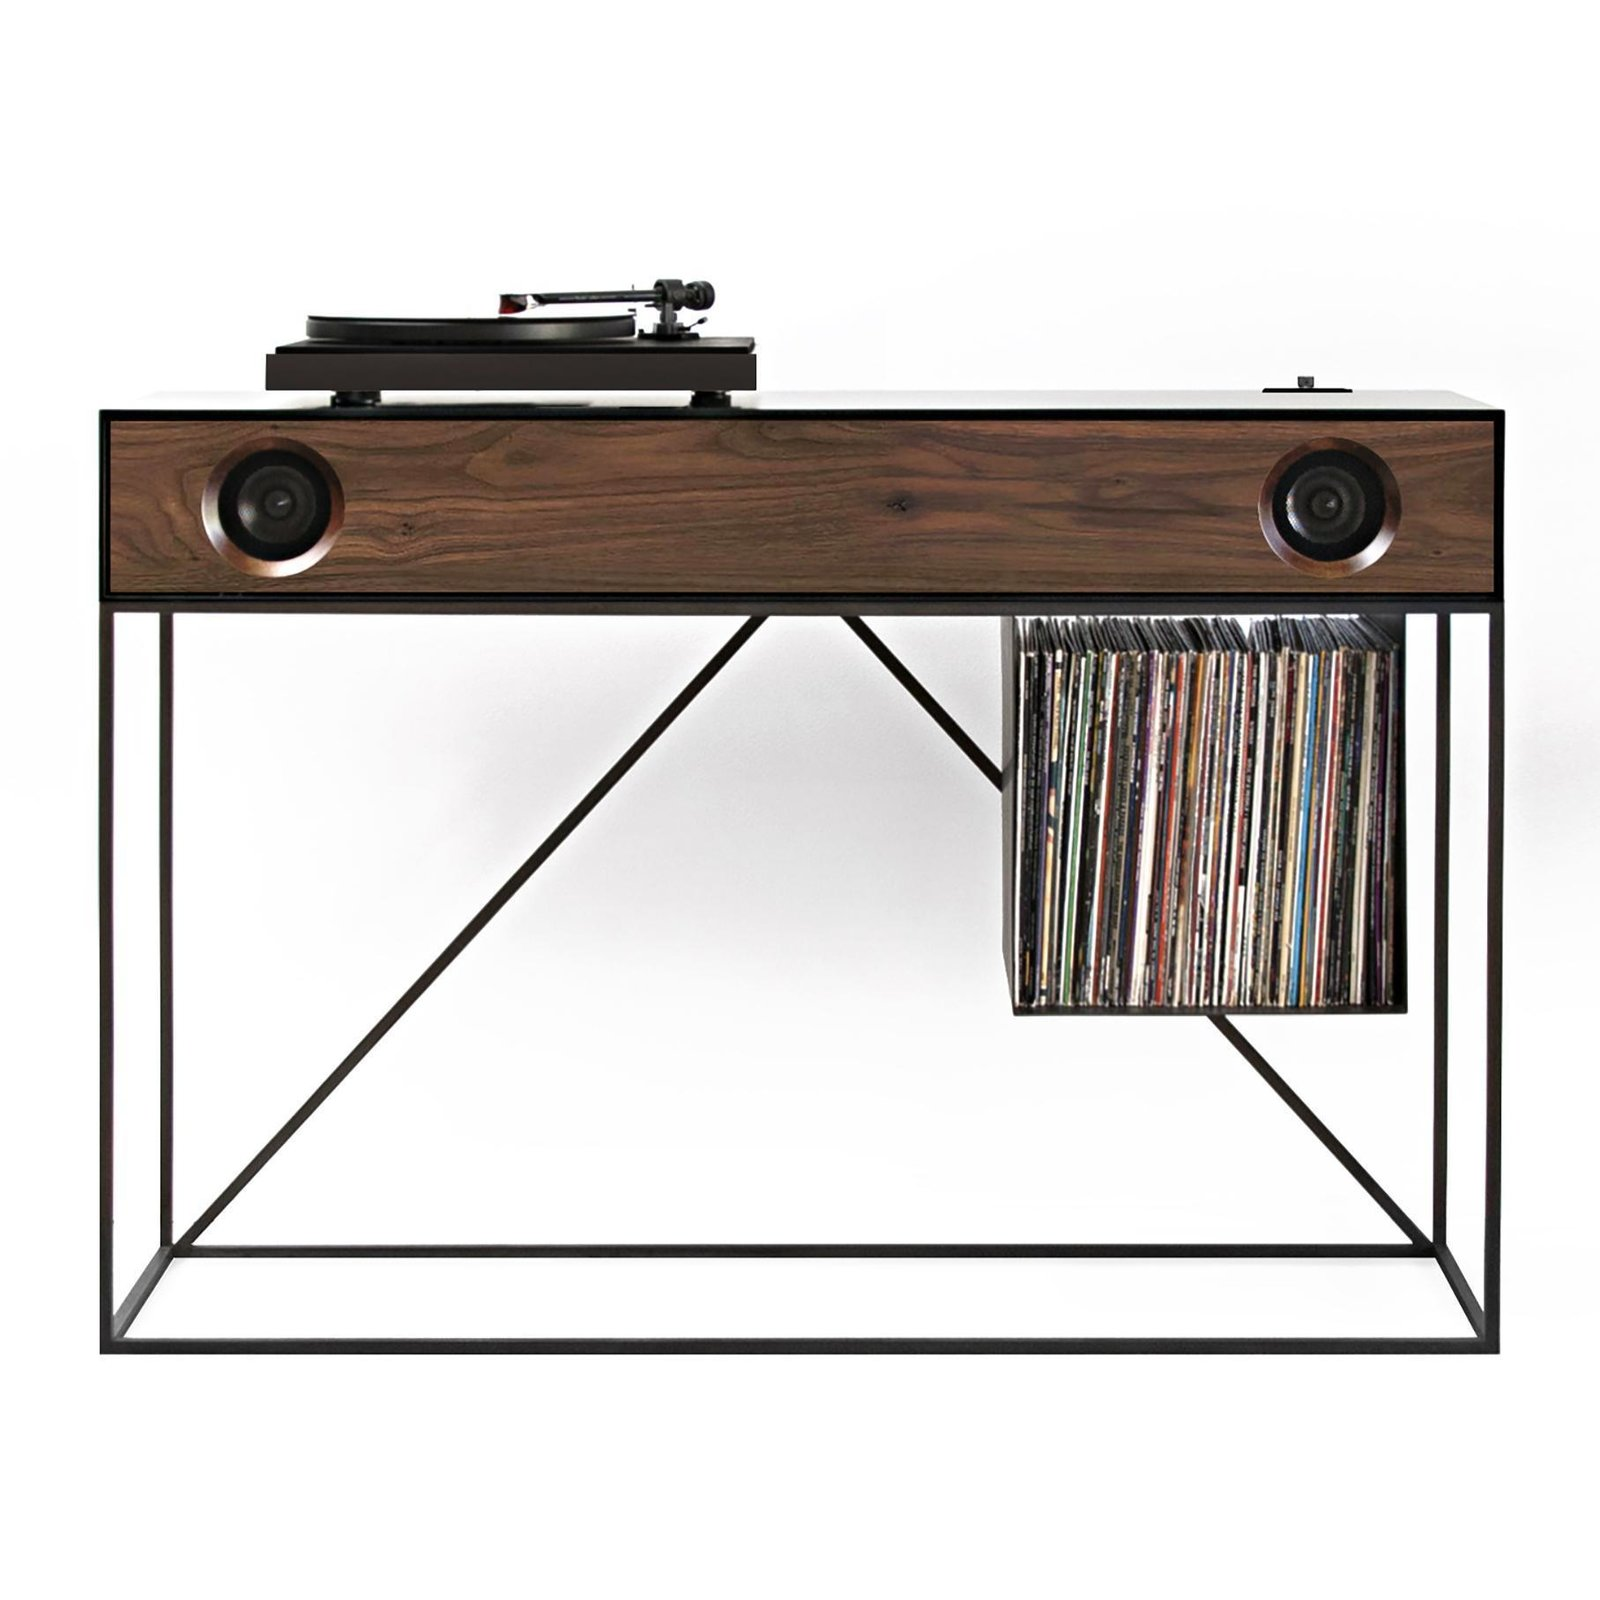 Symbol Audio Stereo Console Table with Speakers by AHA Dwell